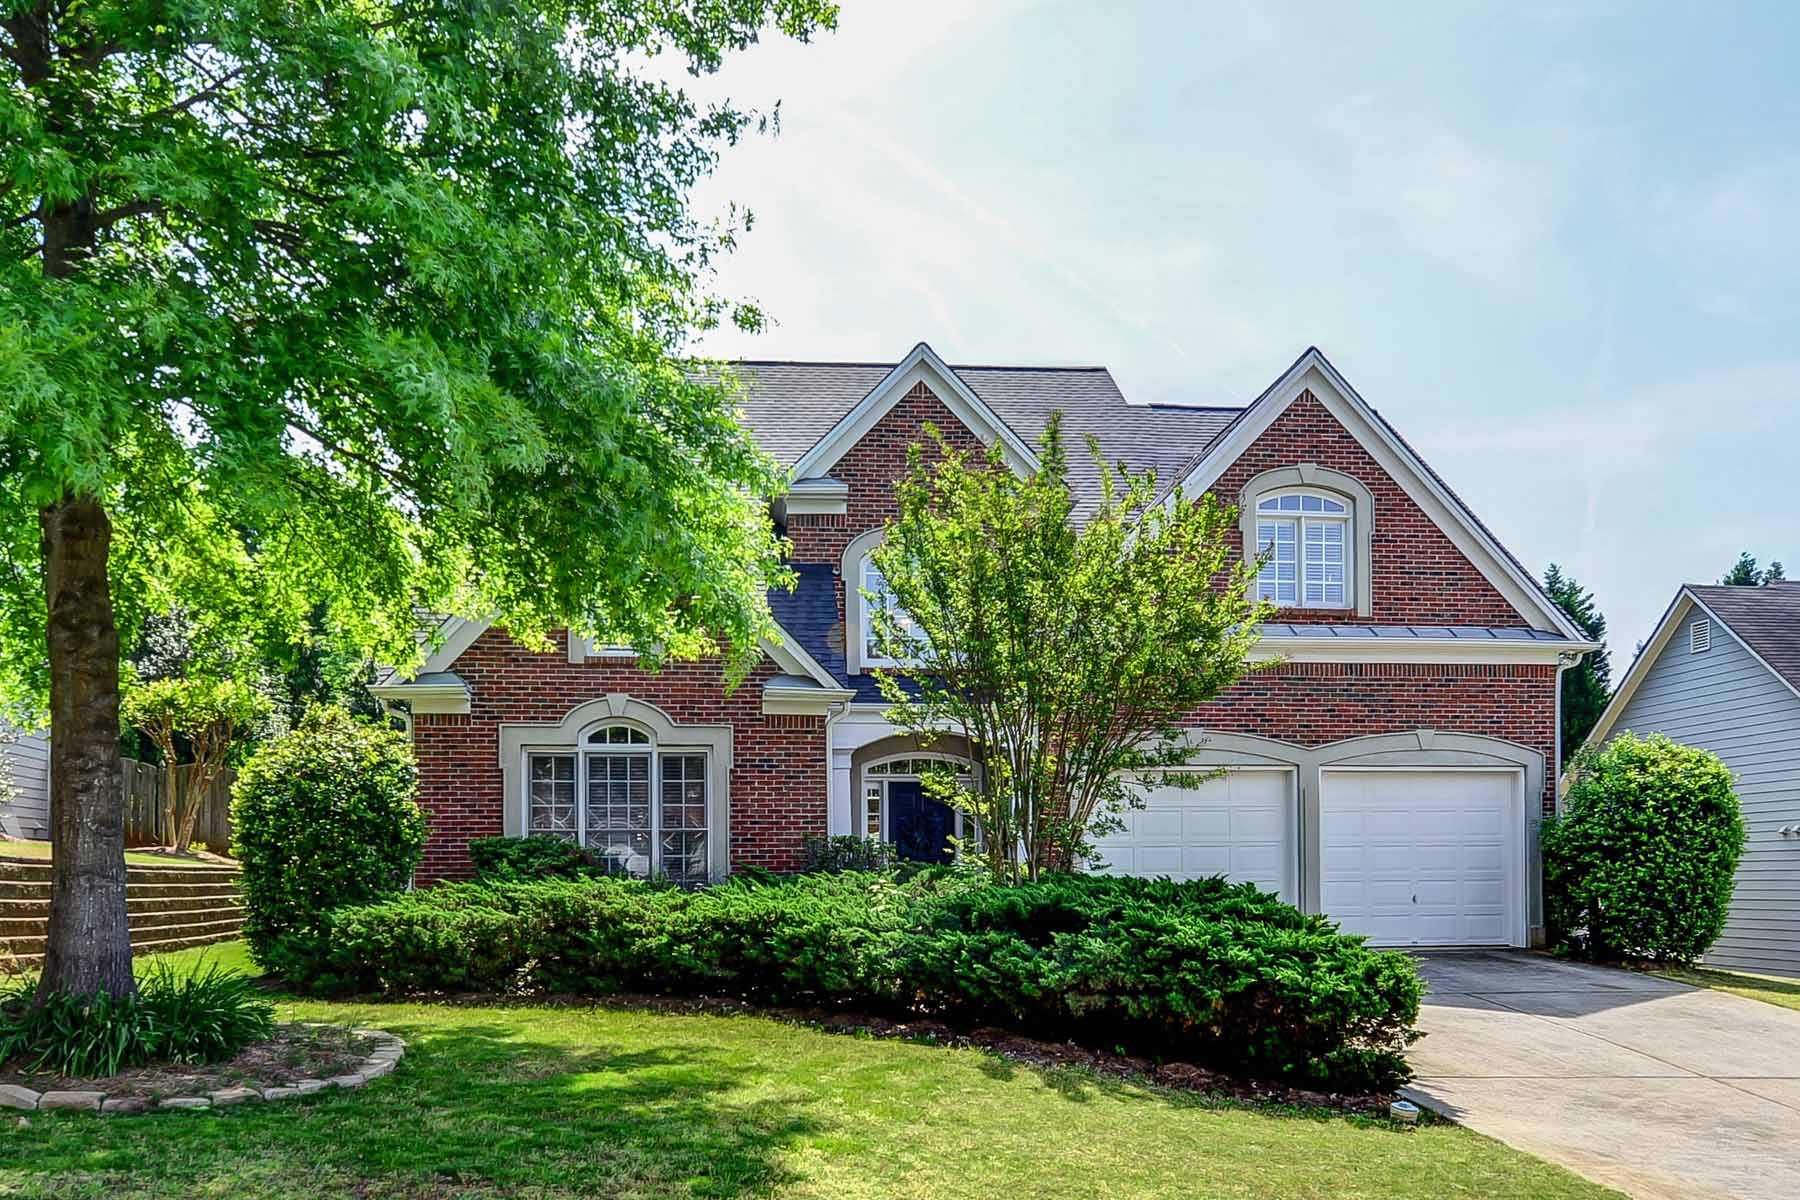 Single Family Home for Active at Spacious, Light-Filled & Open Floor Plan 4221 Cheltingham Lane SE Smyrna, Georgia 30082 United States